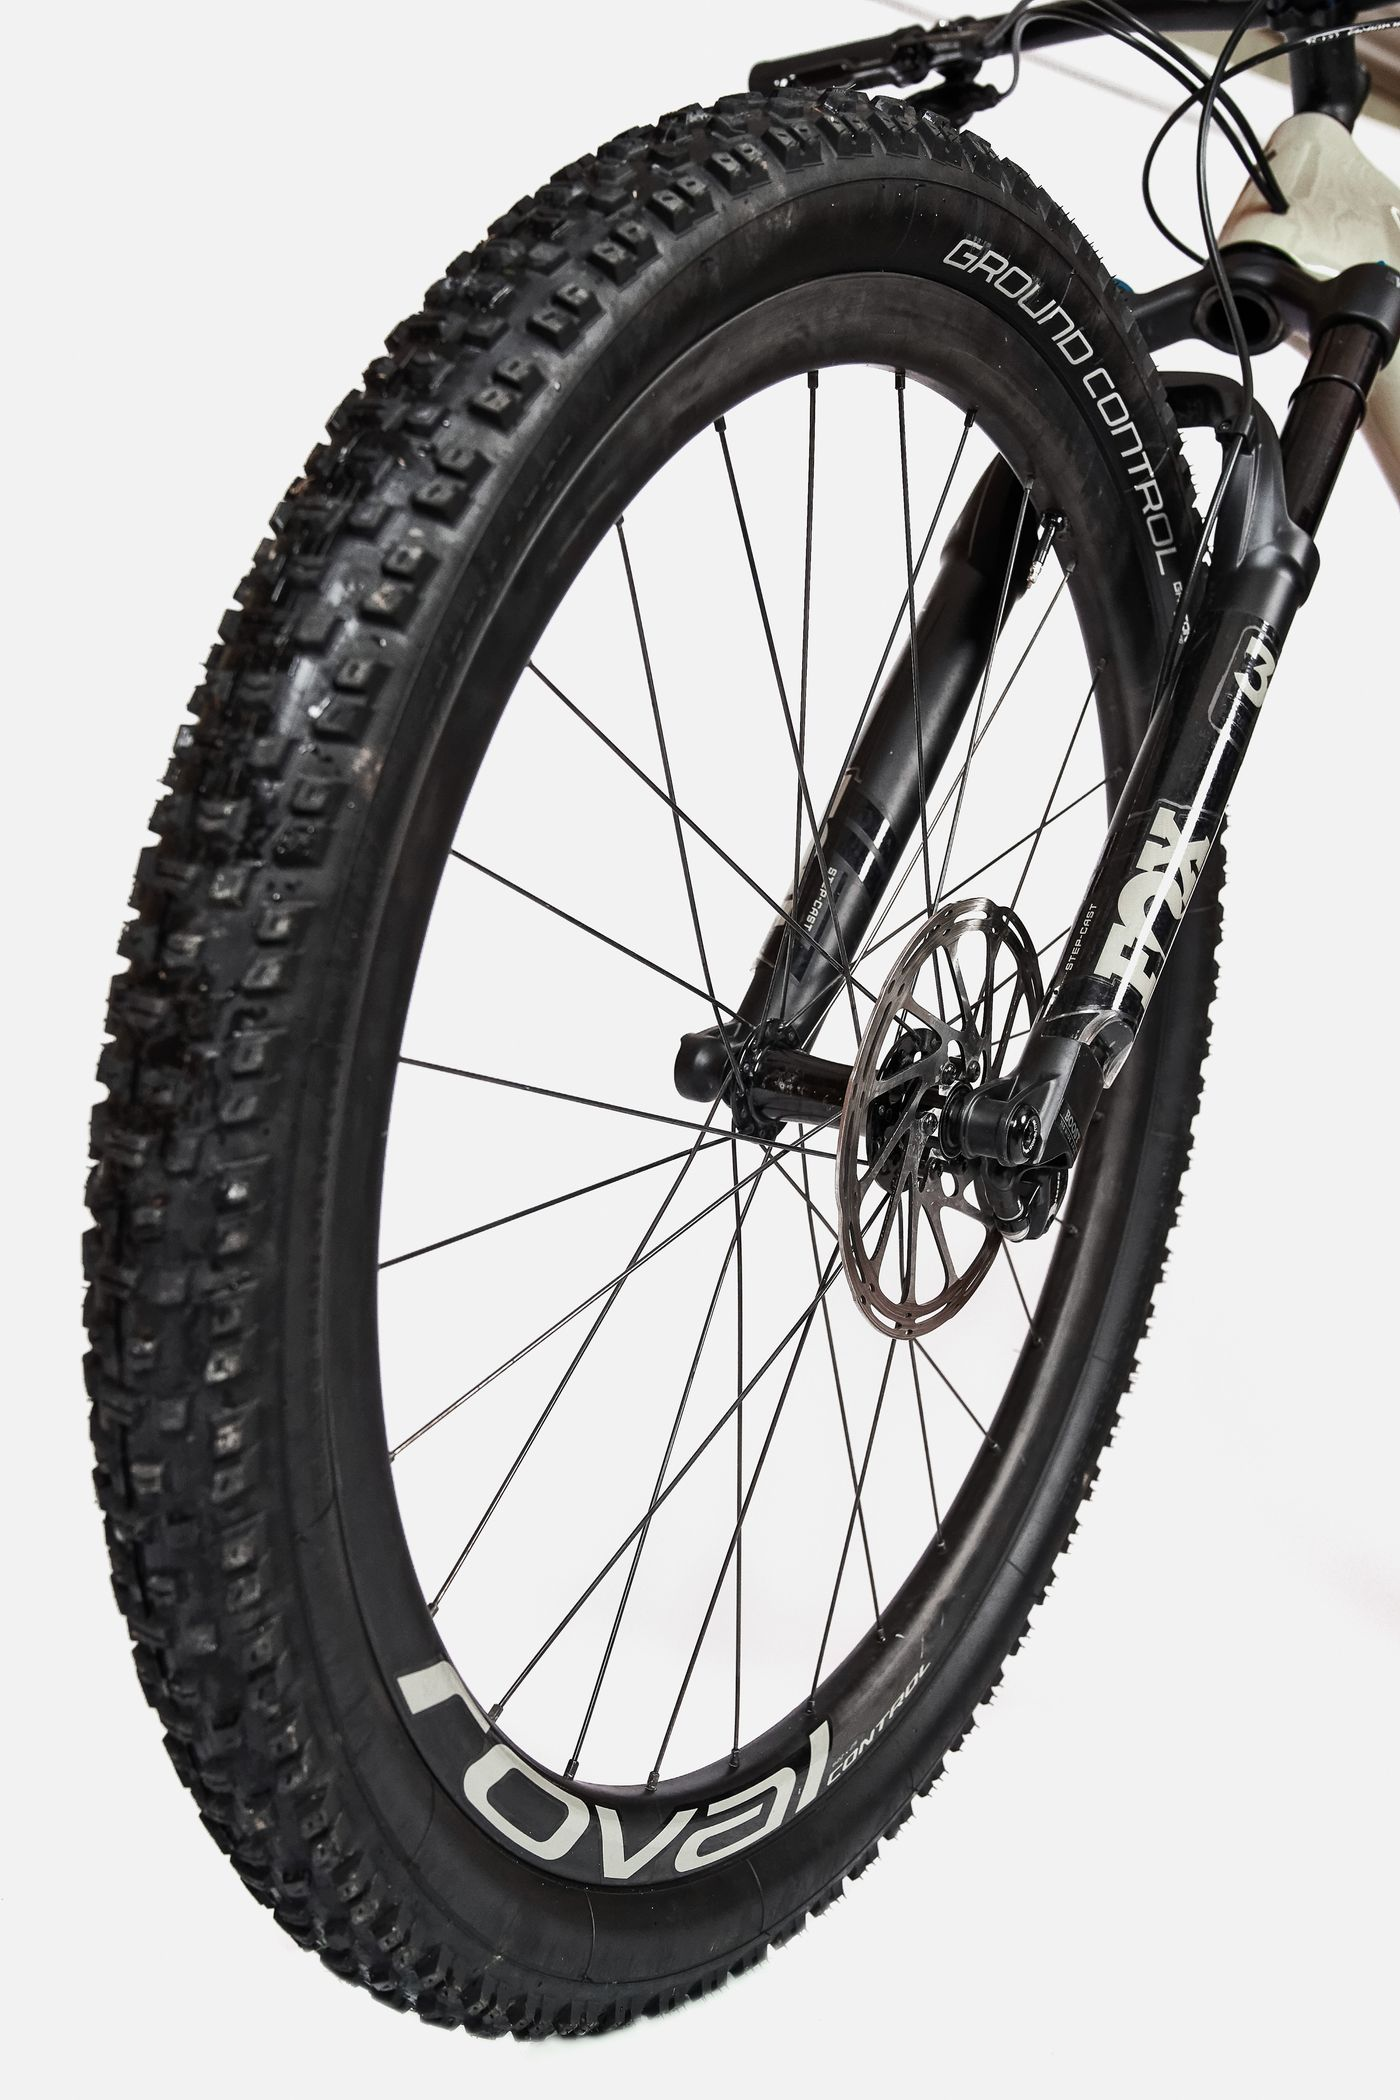 Specialized Epic Expert EVO - Specialized Ground Control Reifen